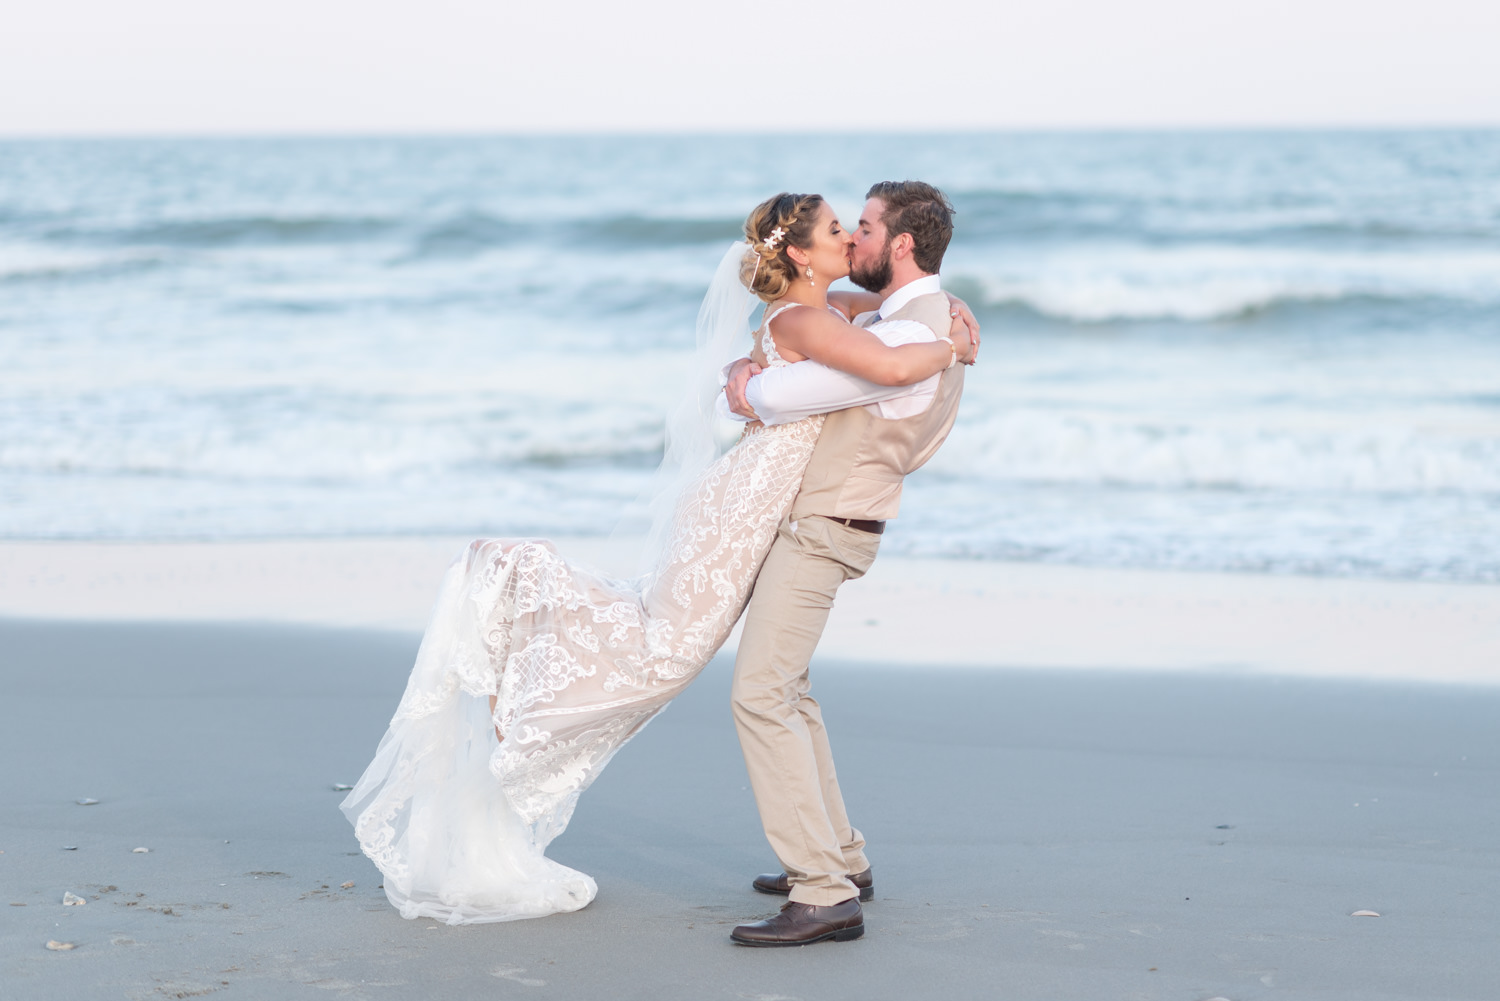 Lift into the air with a kiss - Grande Dunes Ocean Club - Myrtle Beach